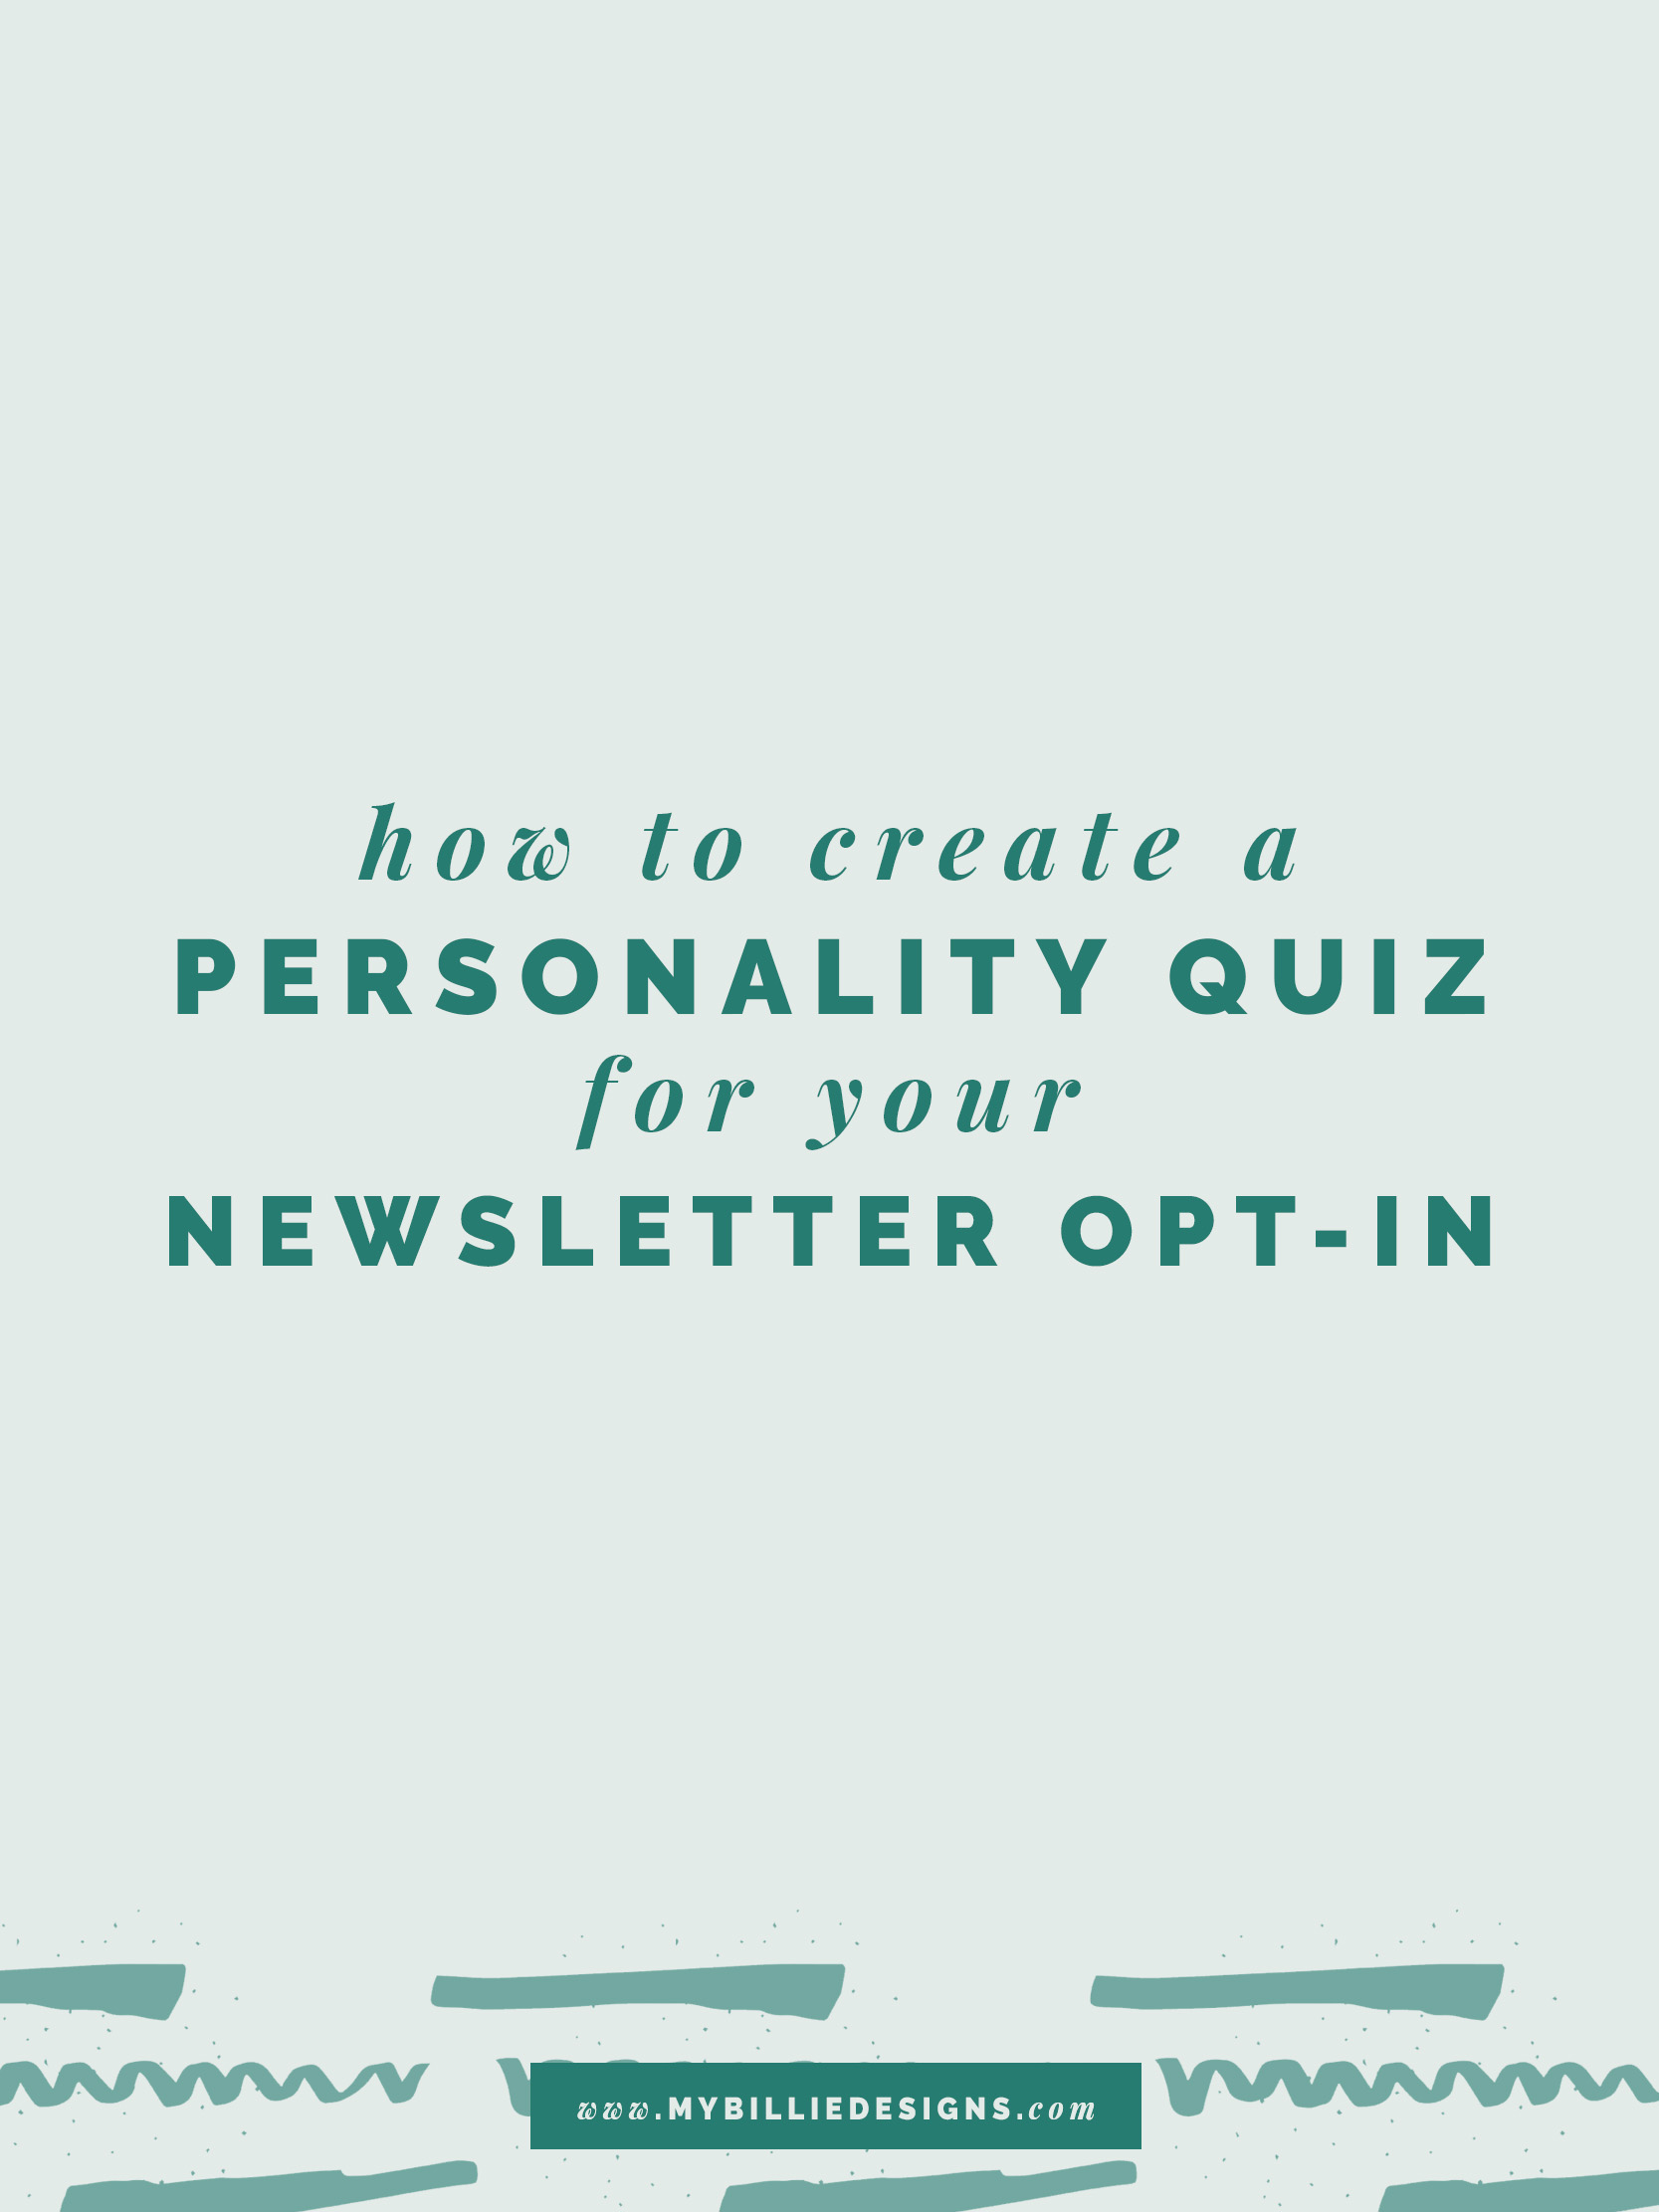 How To Create A Personality Quiz For Your Newsletter Opt-in